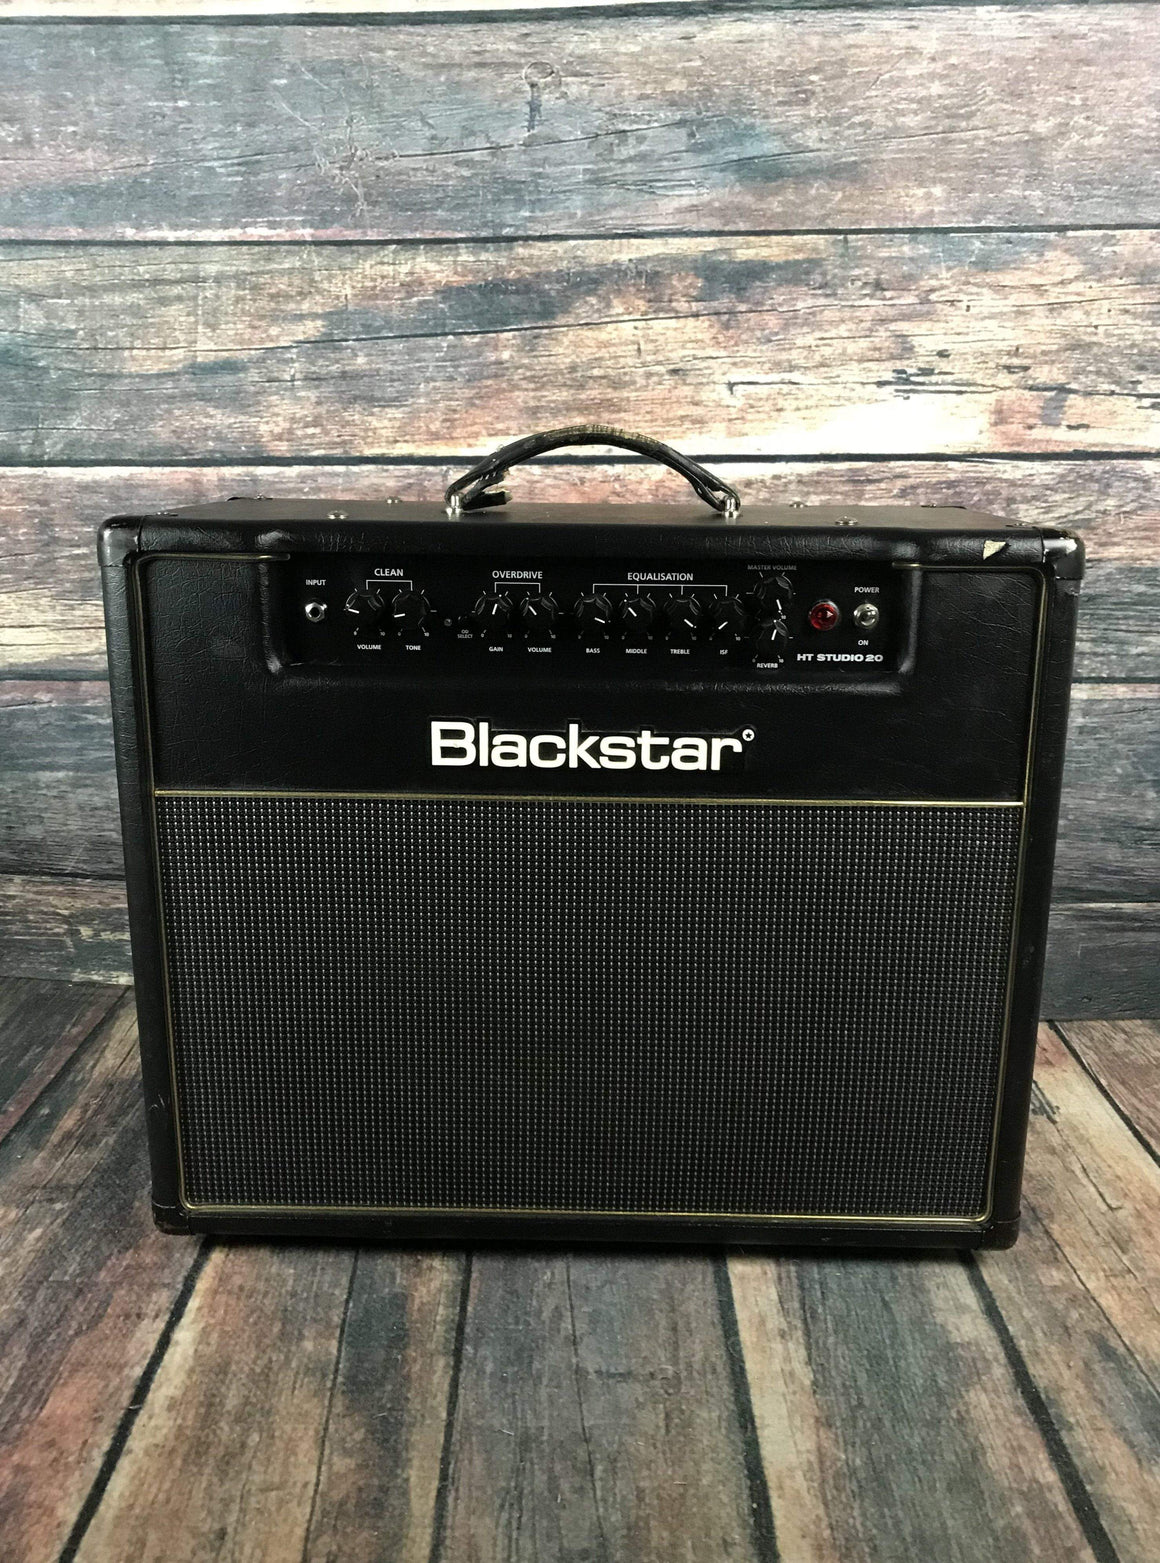 Blackstar Amp Used Blackstar HT Studio 20 Tube Combo Amp